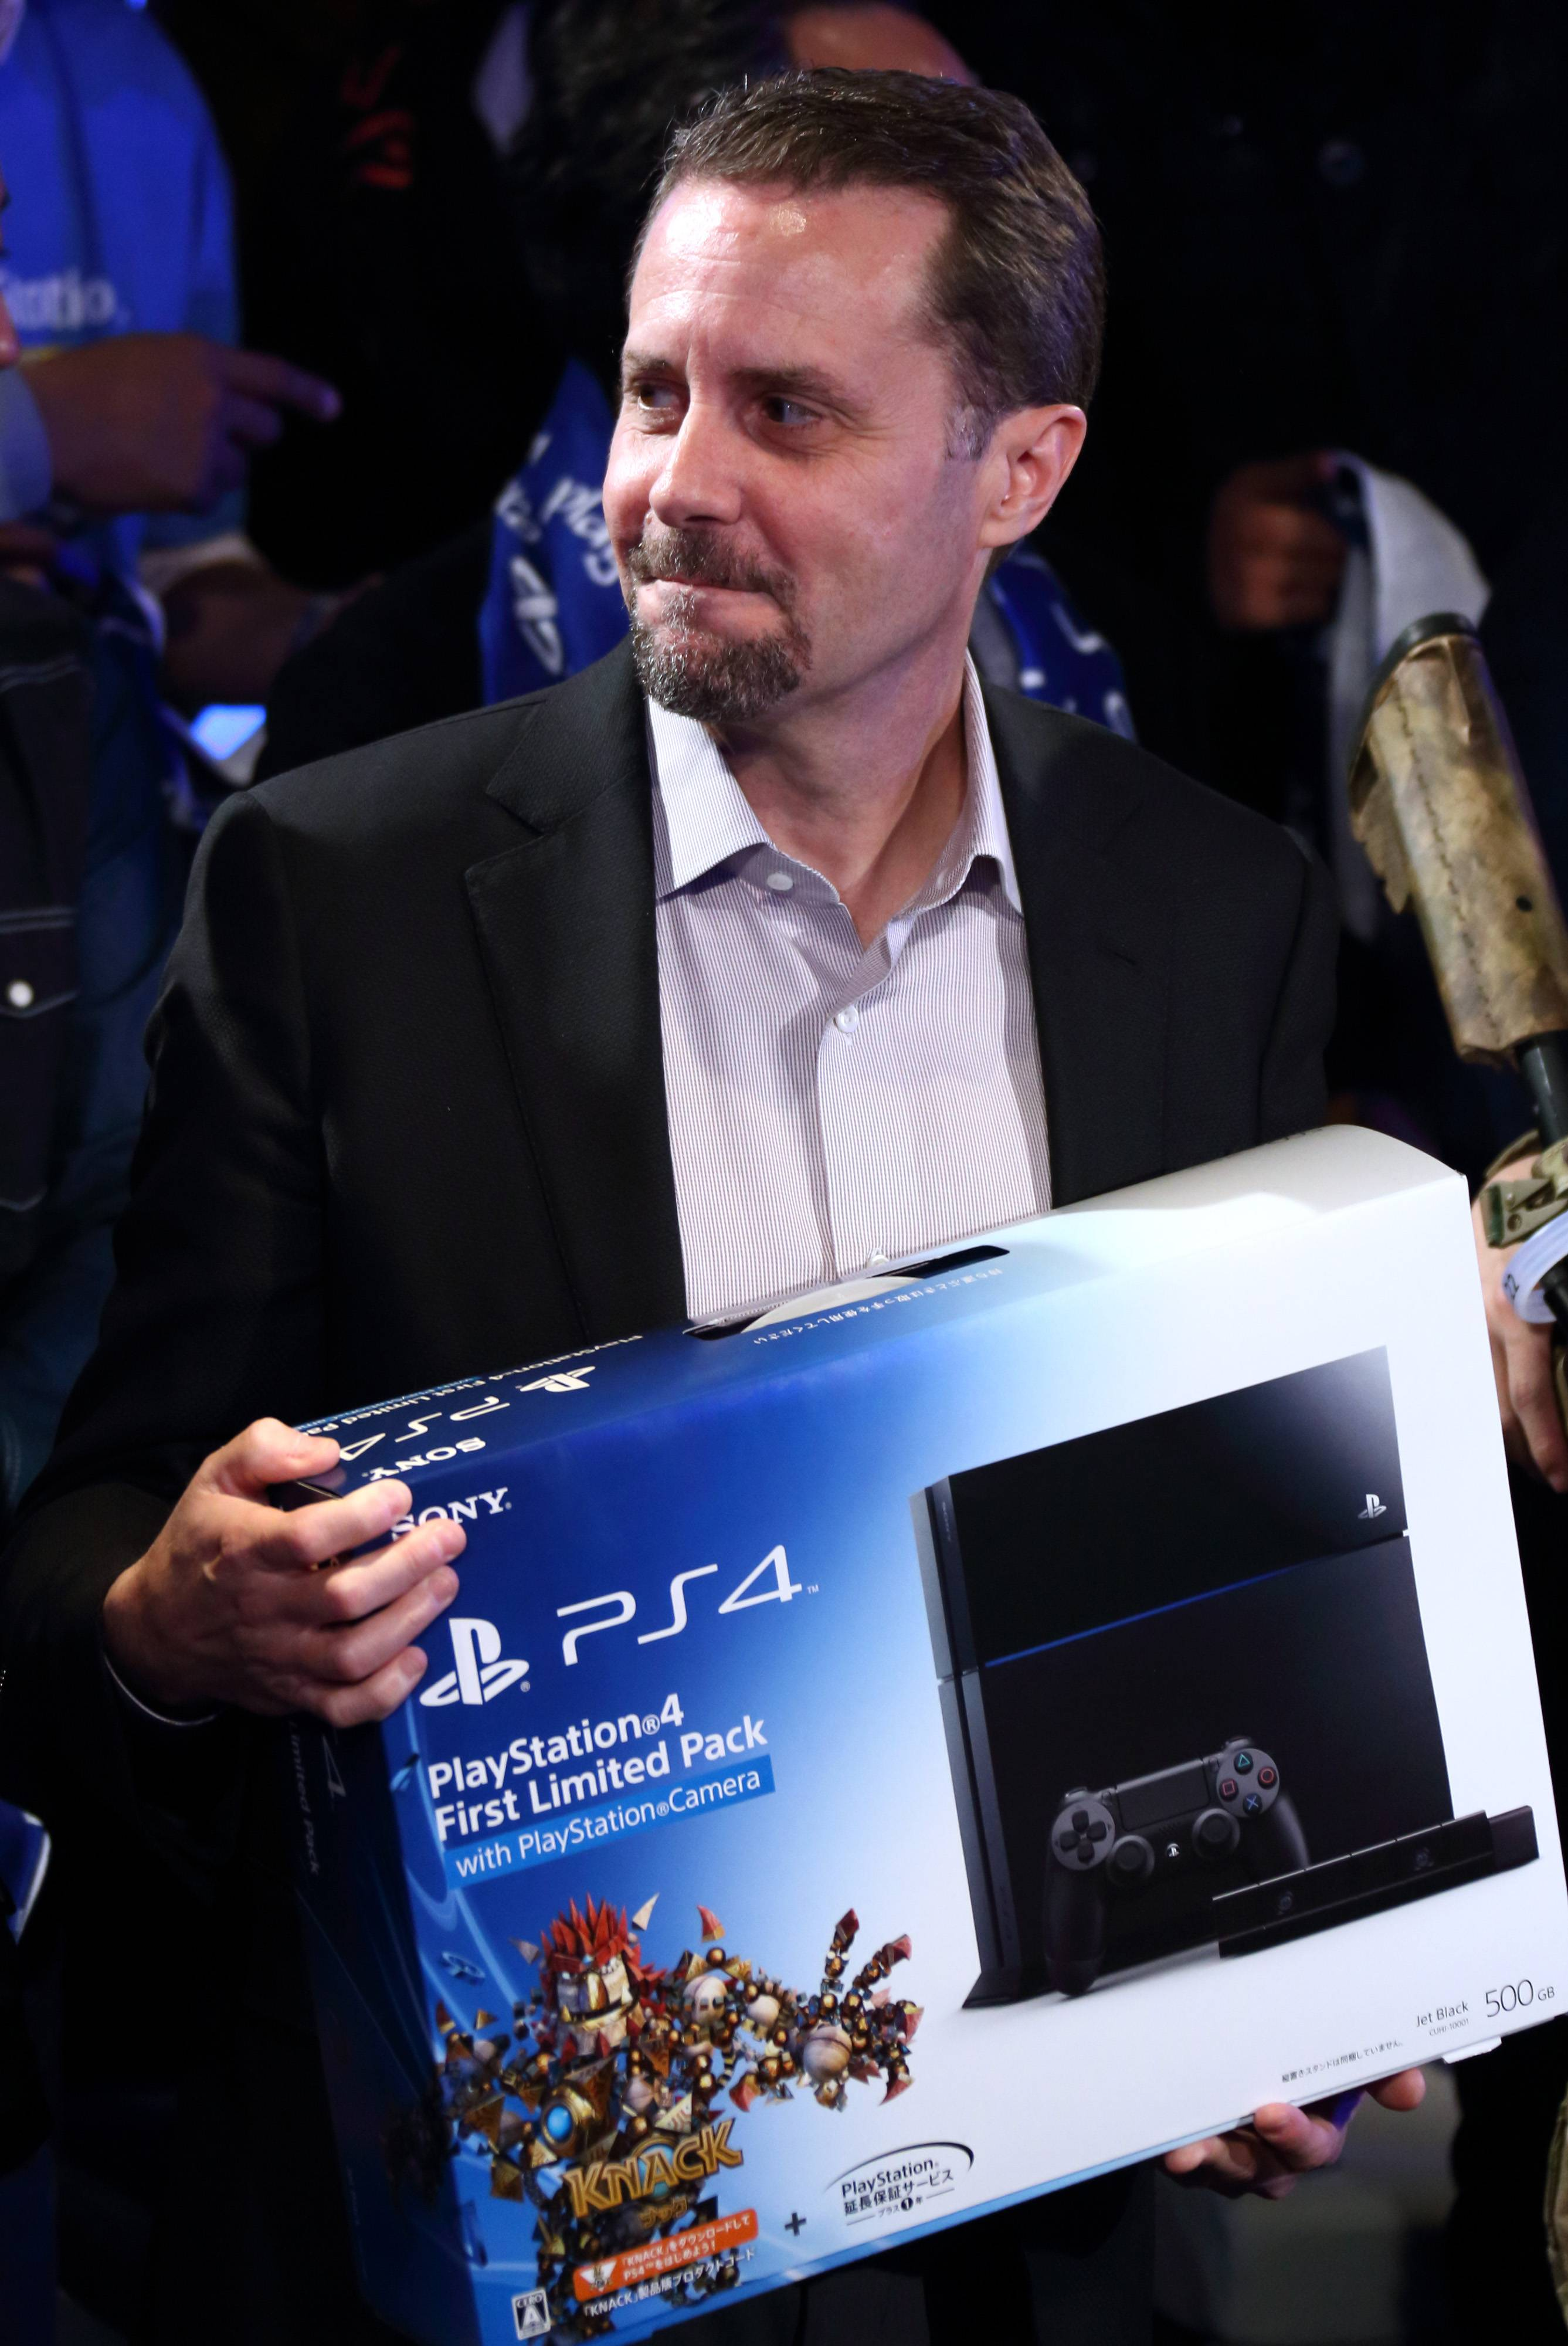 Andrew House, president and chief executive officer of Sony Computer Entertainment Inc., holds a box containing the PlayStation 4 (PS4) video game console at the launch of the PS4 console at the Sony showroom in Tokyo, Japan, on Saturday, Feb. 22, 2014. Sony Corp., its credit rating cut to junk by Moody's Investors Service as Japan's biggest television maker struggles to capture consumer demand for smartphones and tablet computers, released the PS4 console in Japan.